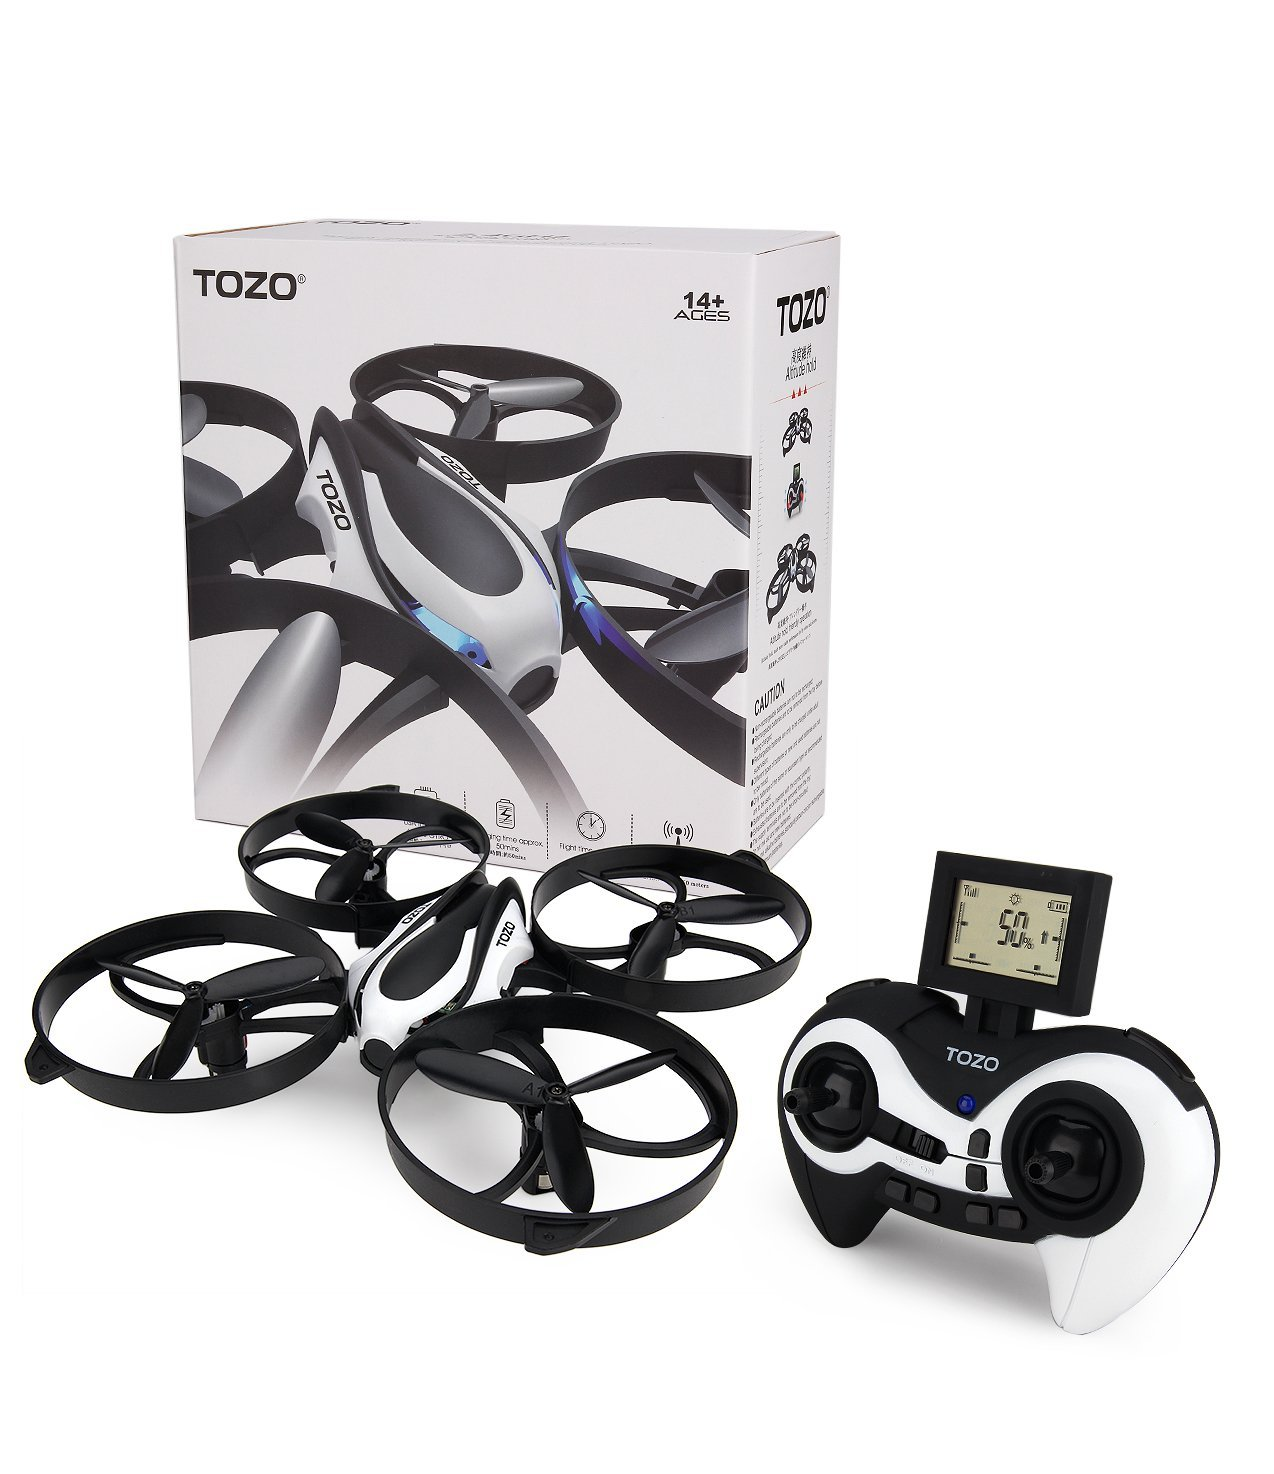 Tozo Q2020 Drone Rc Quadcopter Altitude Hold Headless Rtf